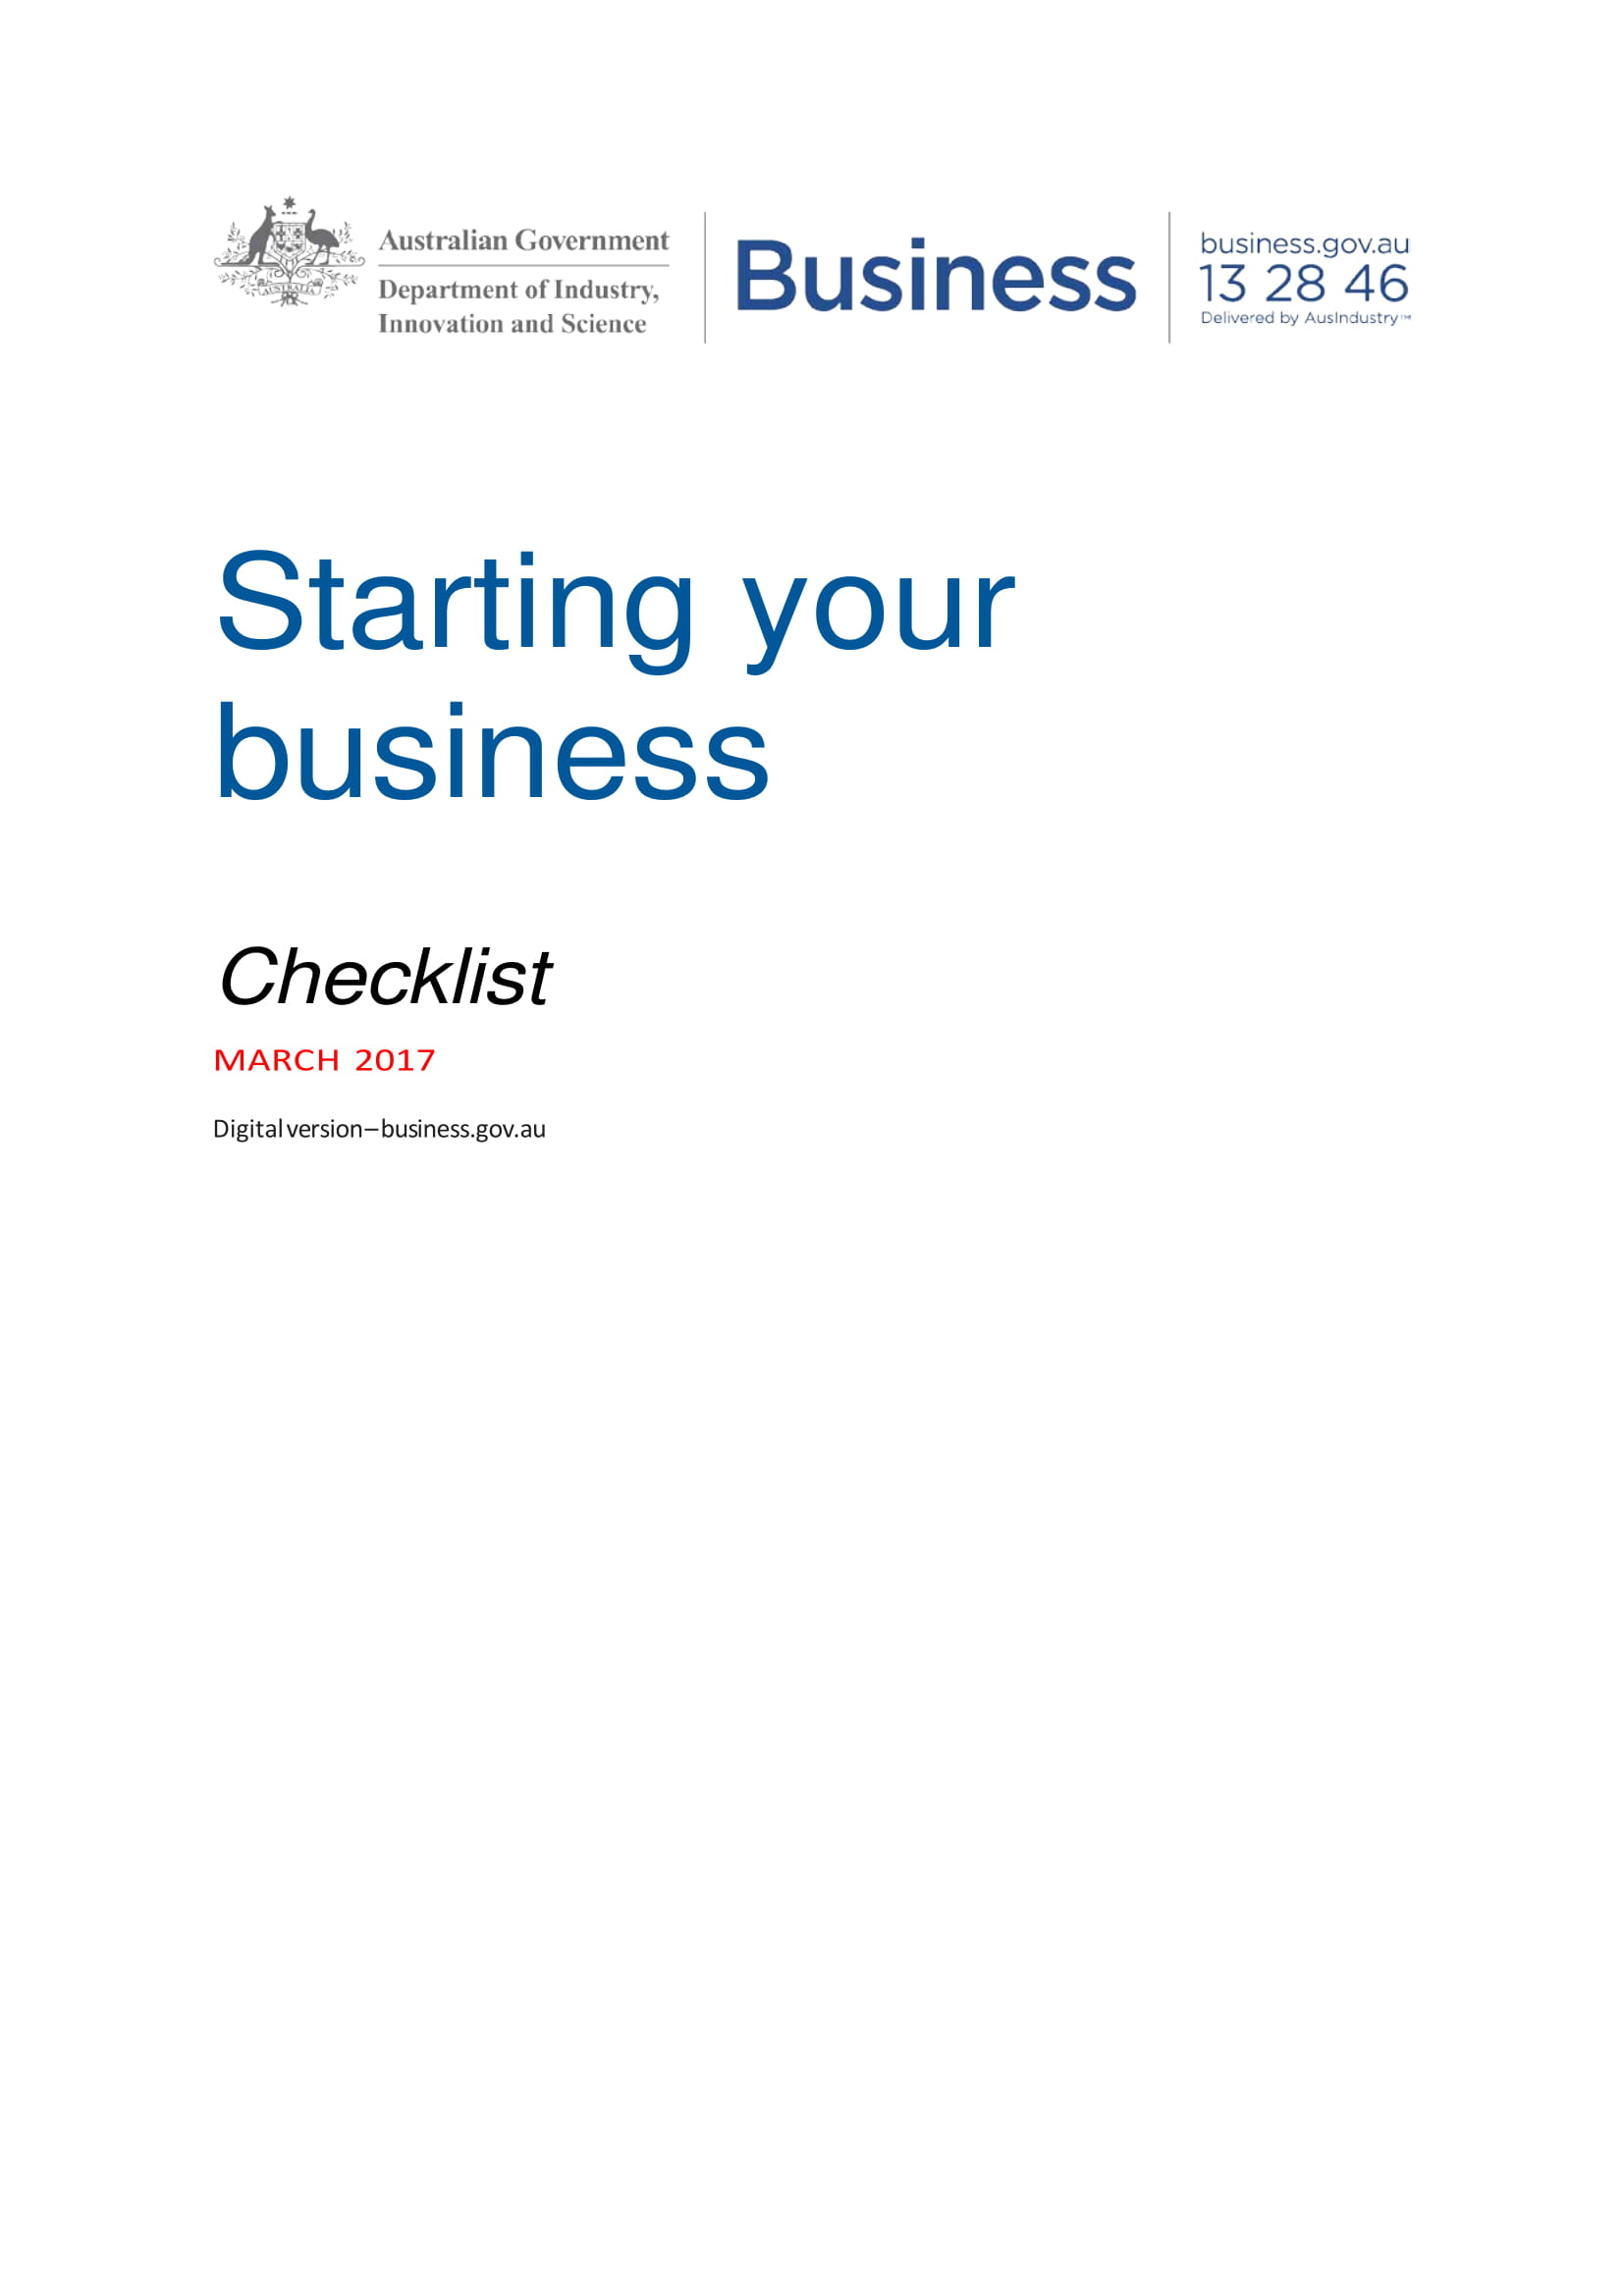 20 checklist examples pdf starting your business checklist example wajeb Choice Image